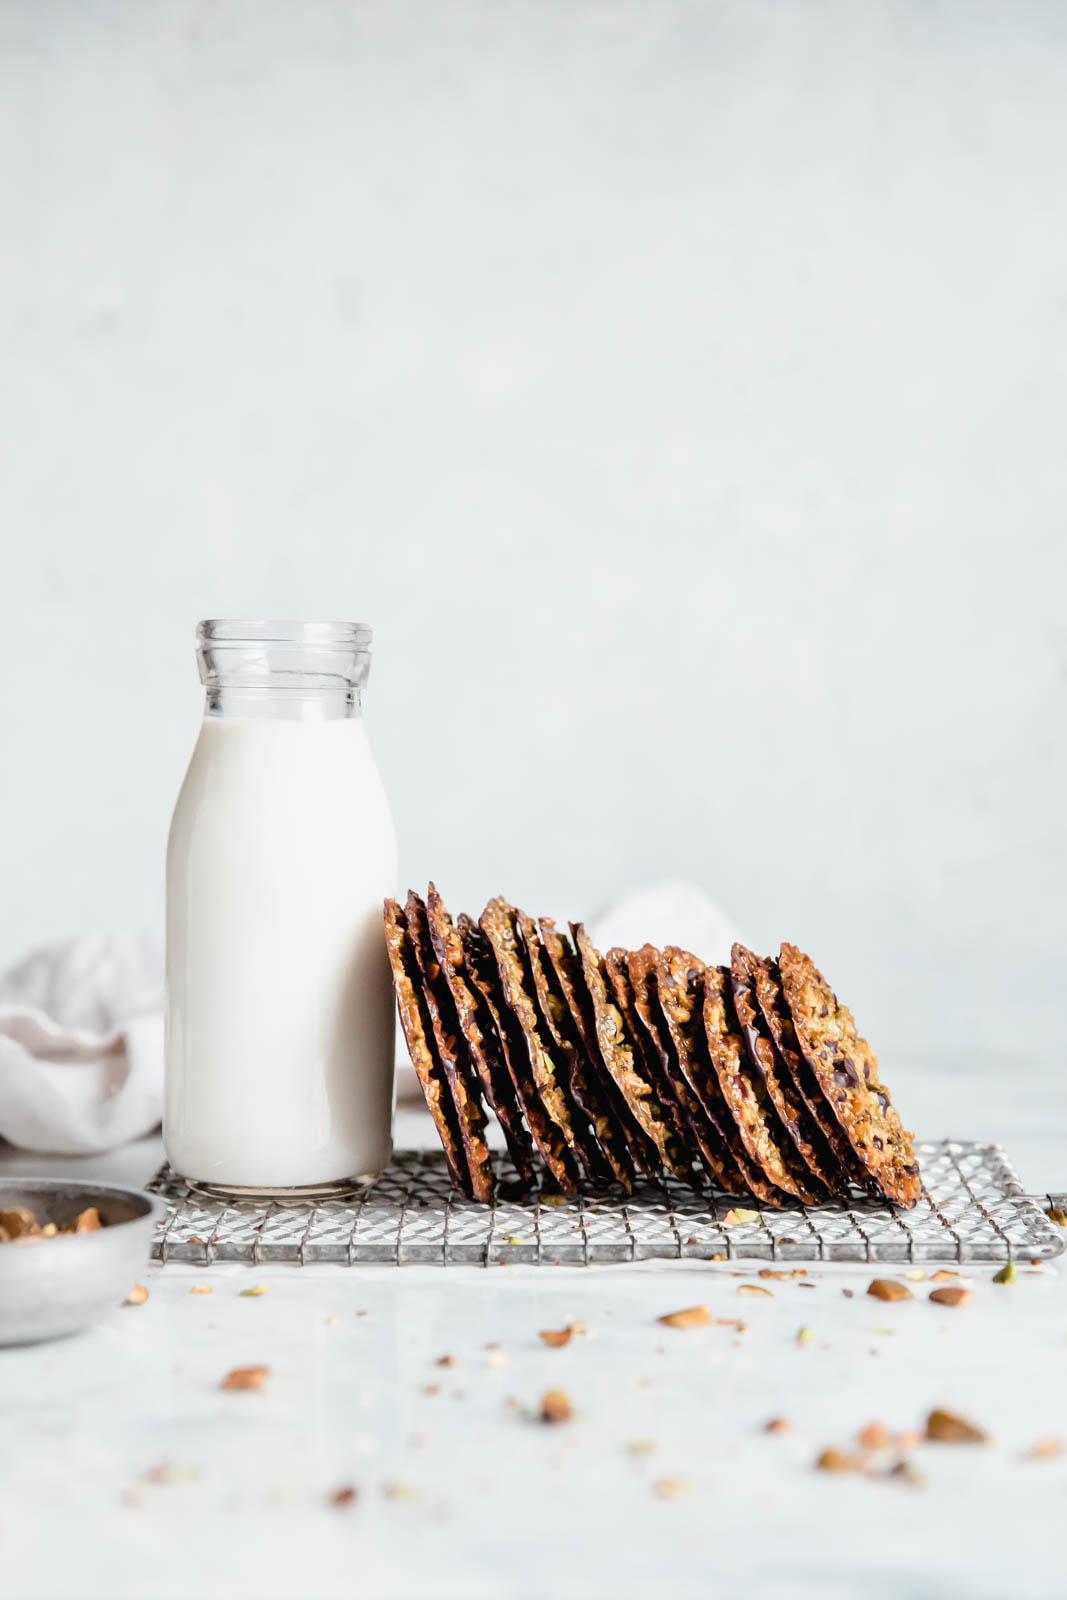 glass of milk with homemade lace cookies